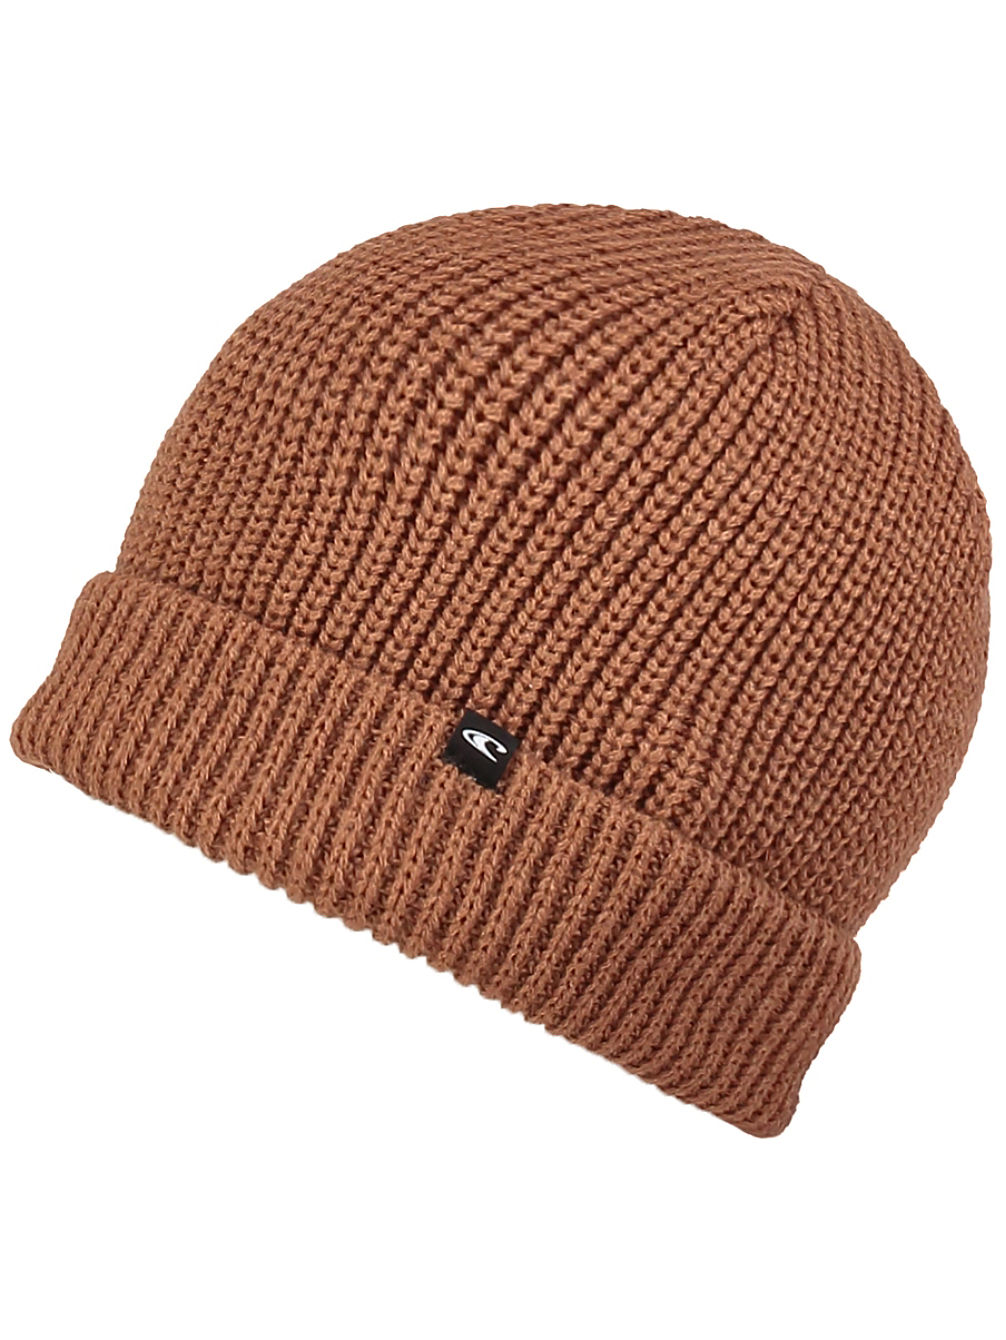 1c768a94c91 Buy O Neill Everyday Beanie online at Blue Tomato